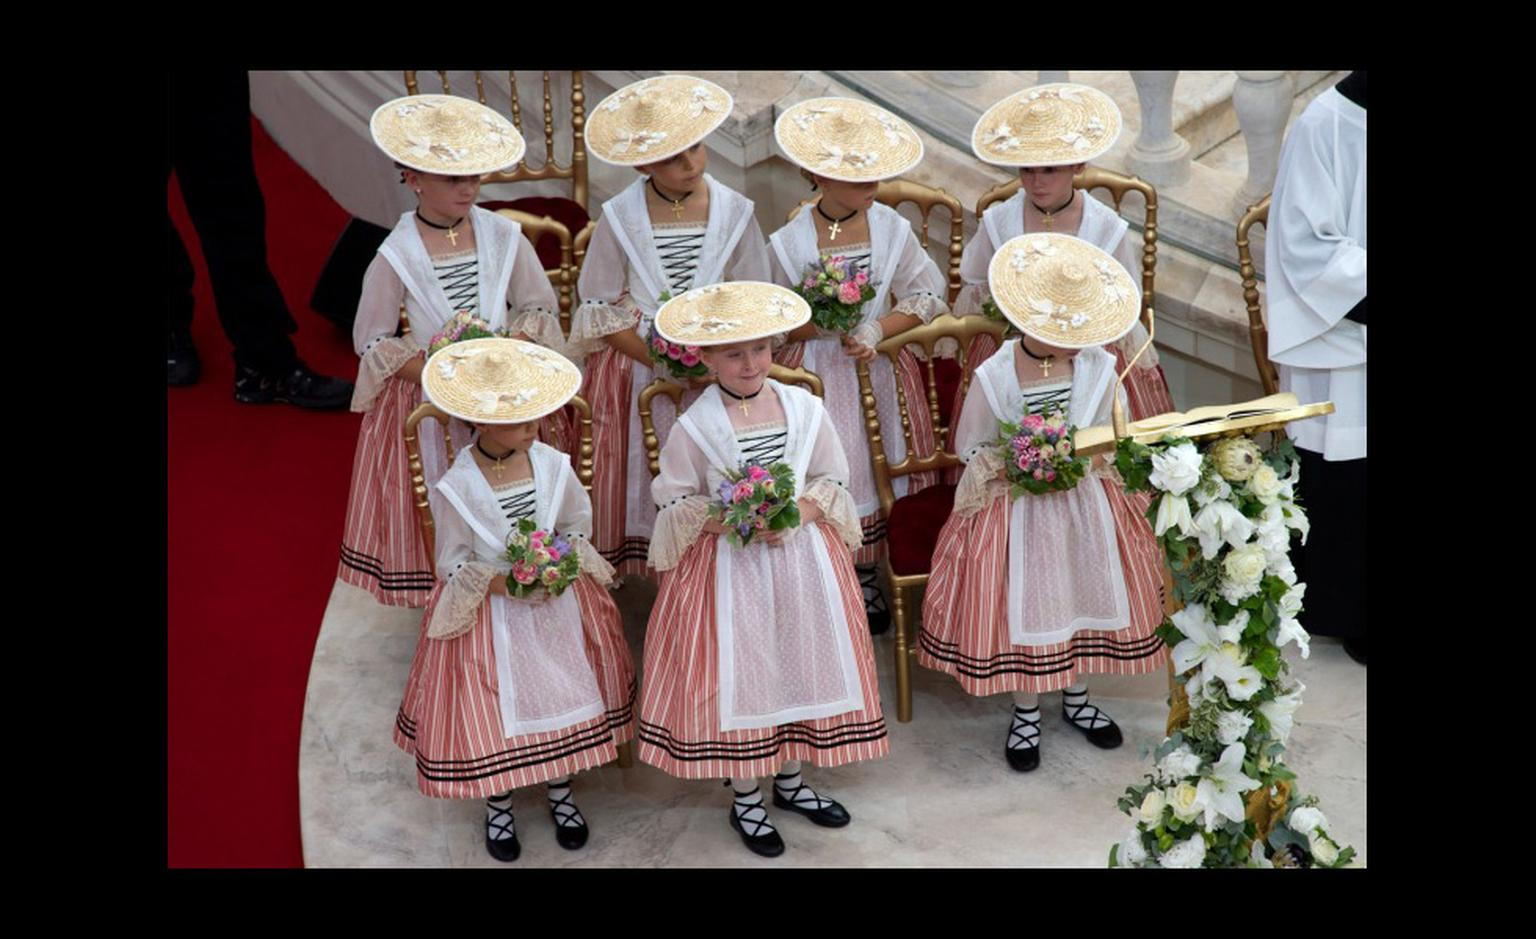 The bridesmaid's in typical Moneguasque outfits at the wedding of Prince Albert II and Princess Charlene. Photo: Prince's Palace Monaco